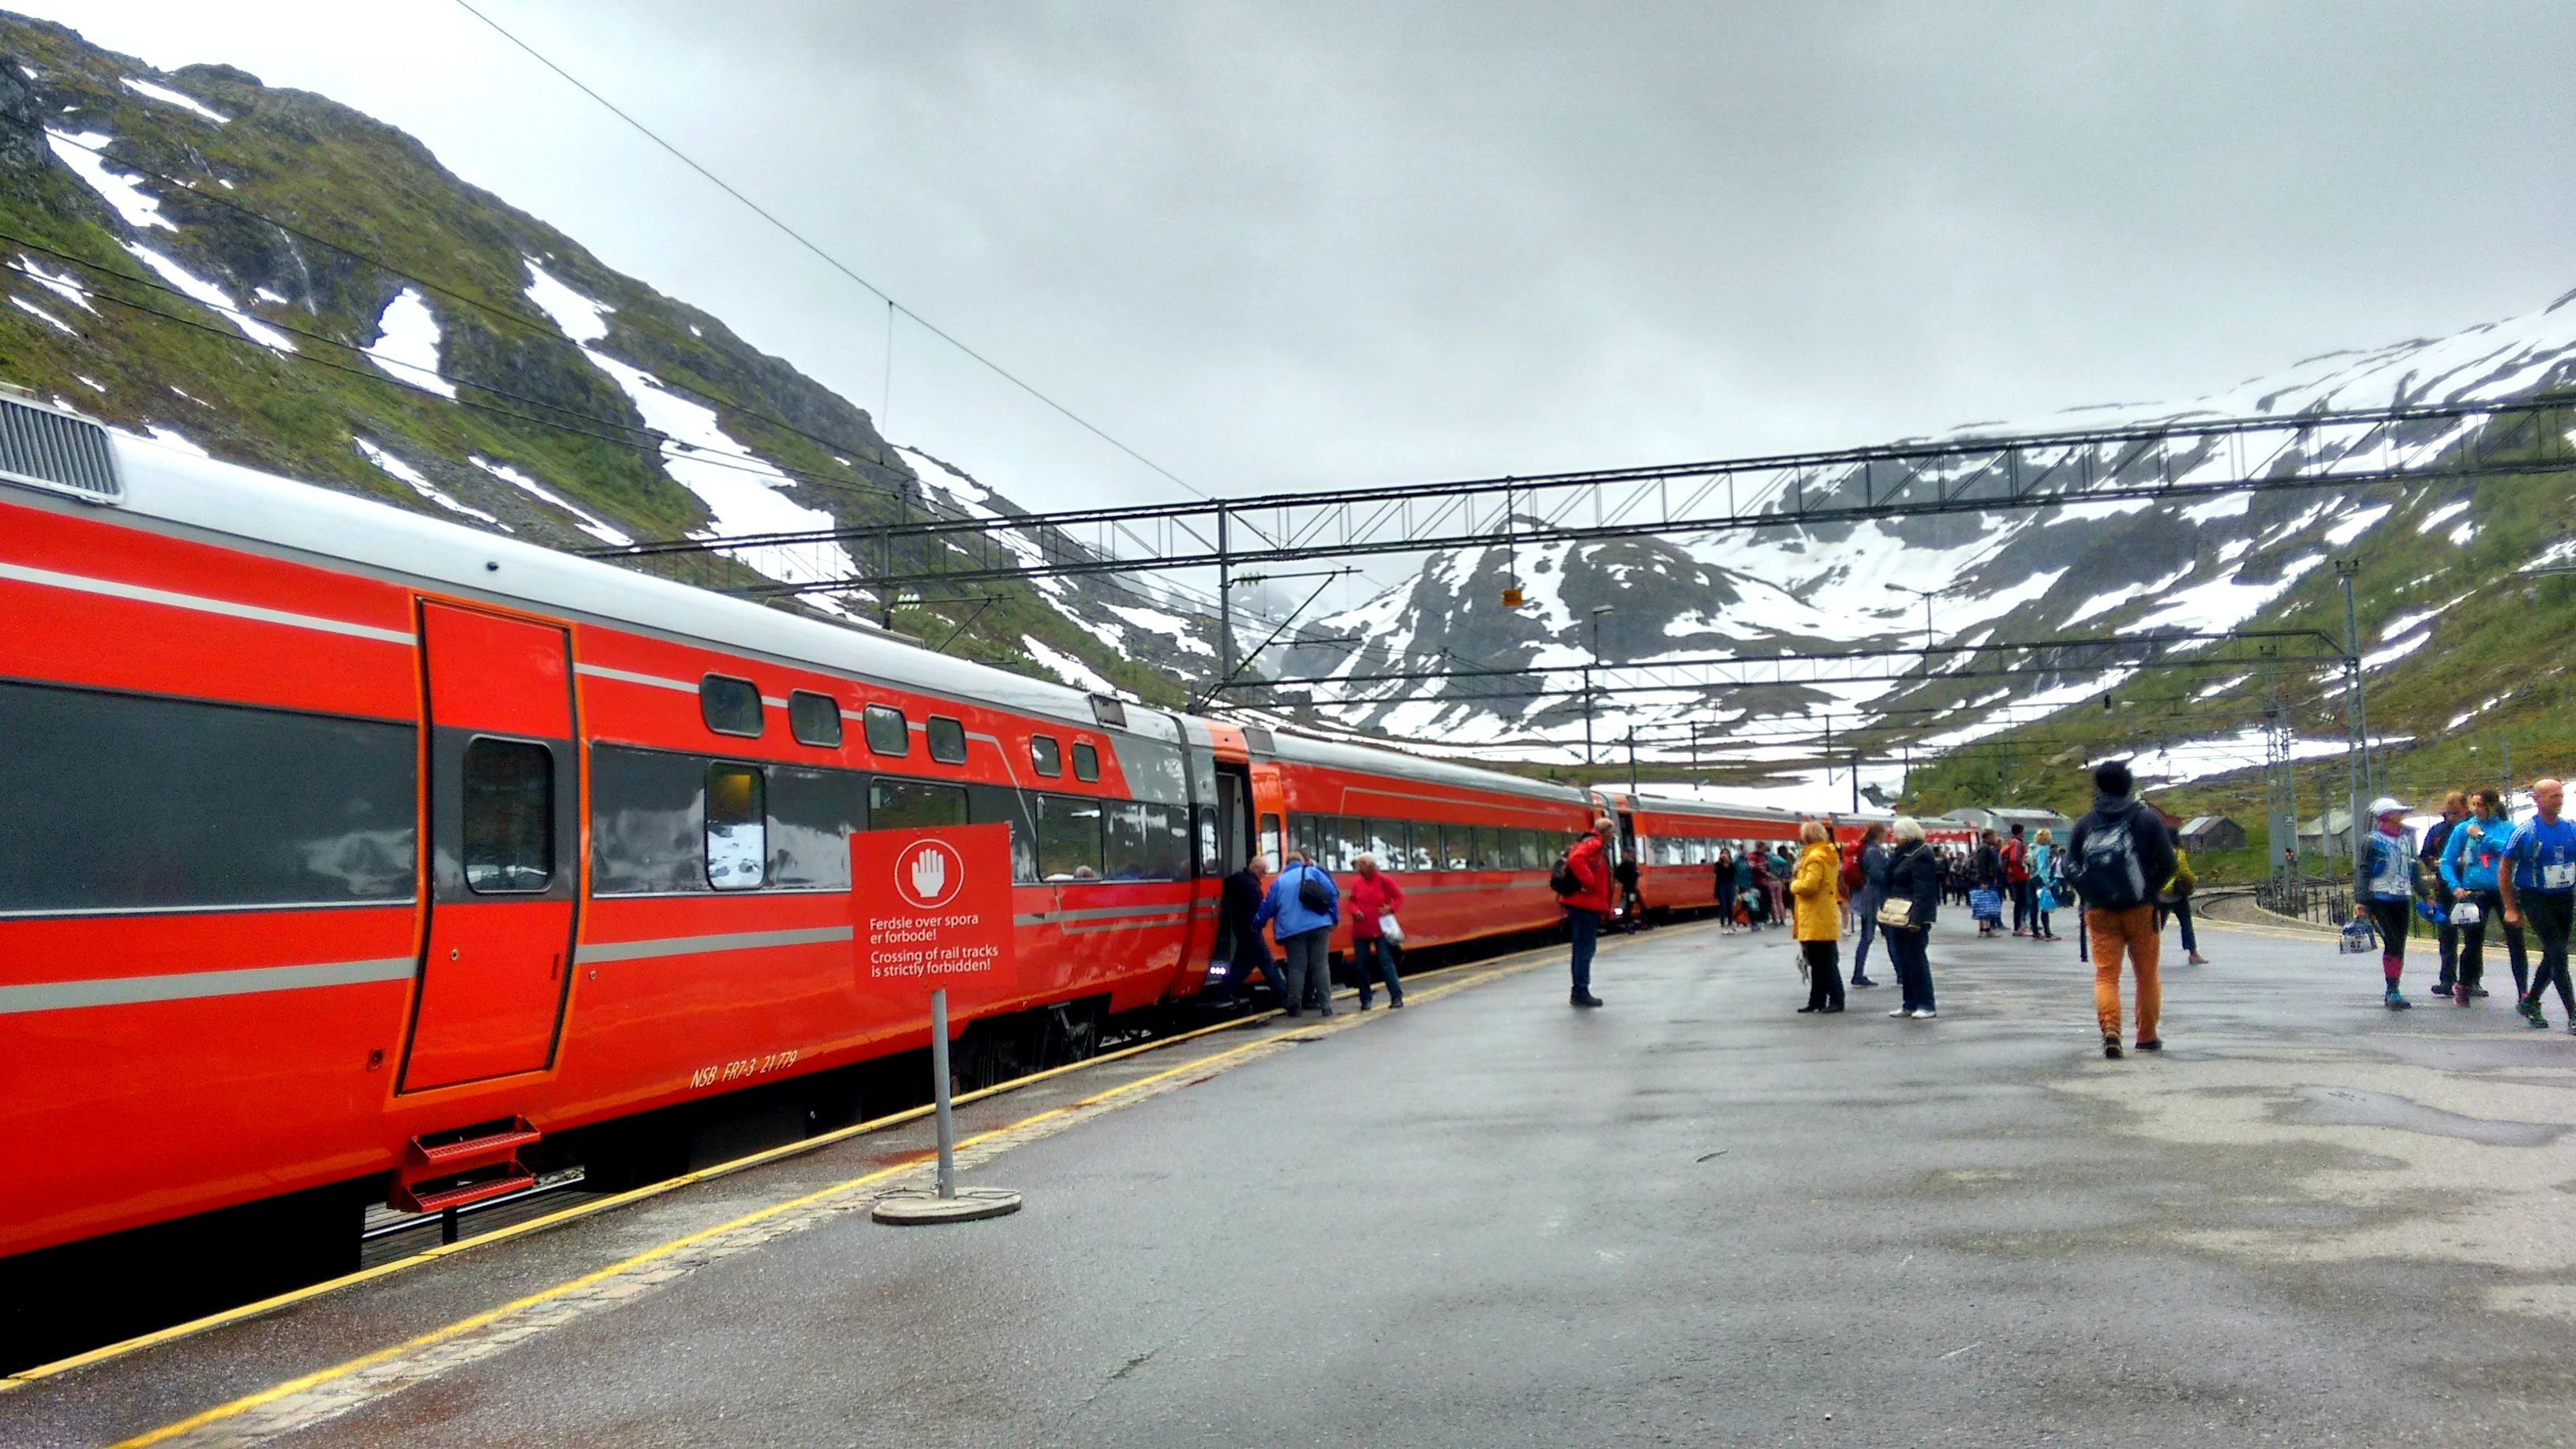 The prettiest train station I have ever seen. Myrdal- Flam rail route